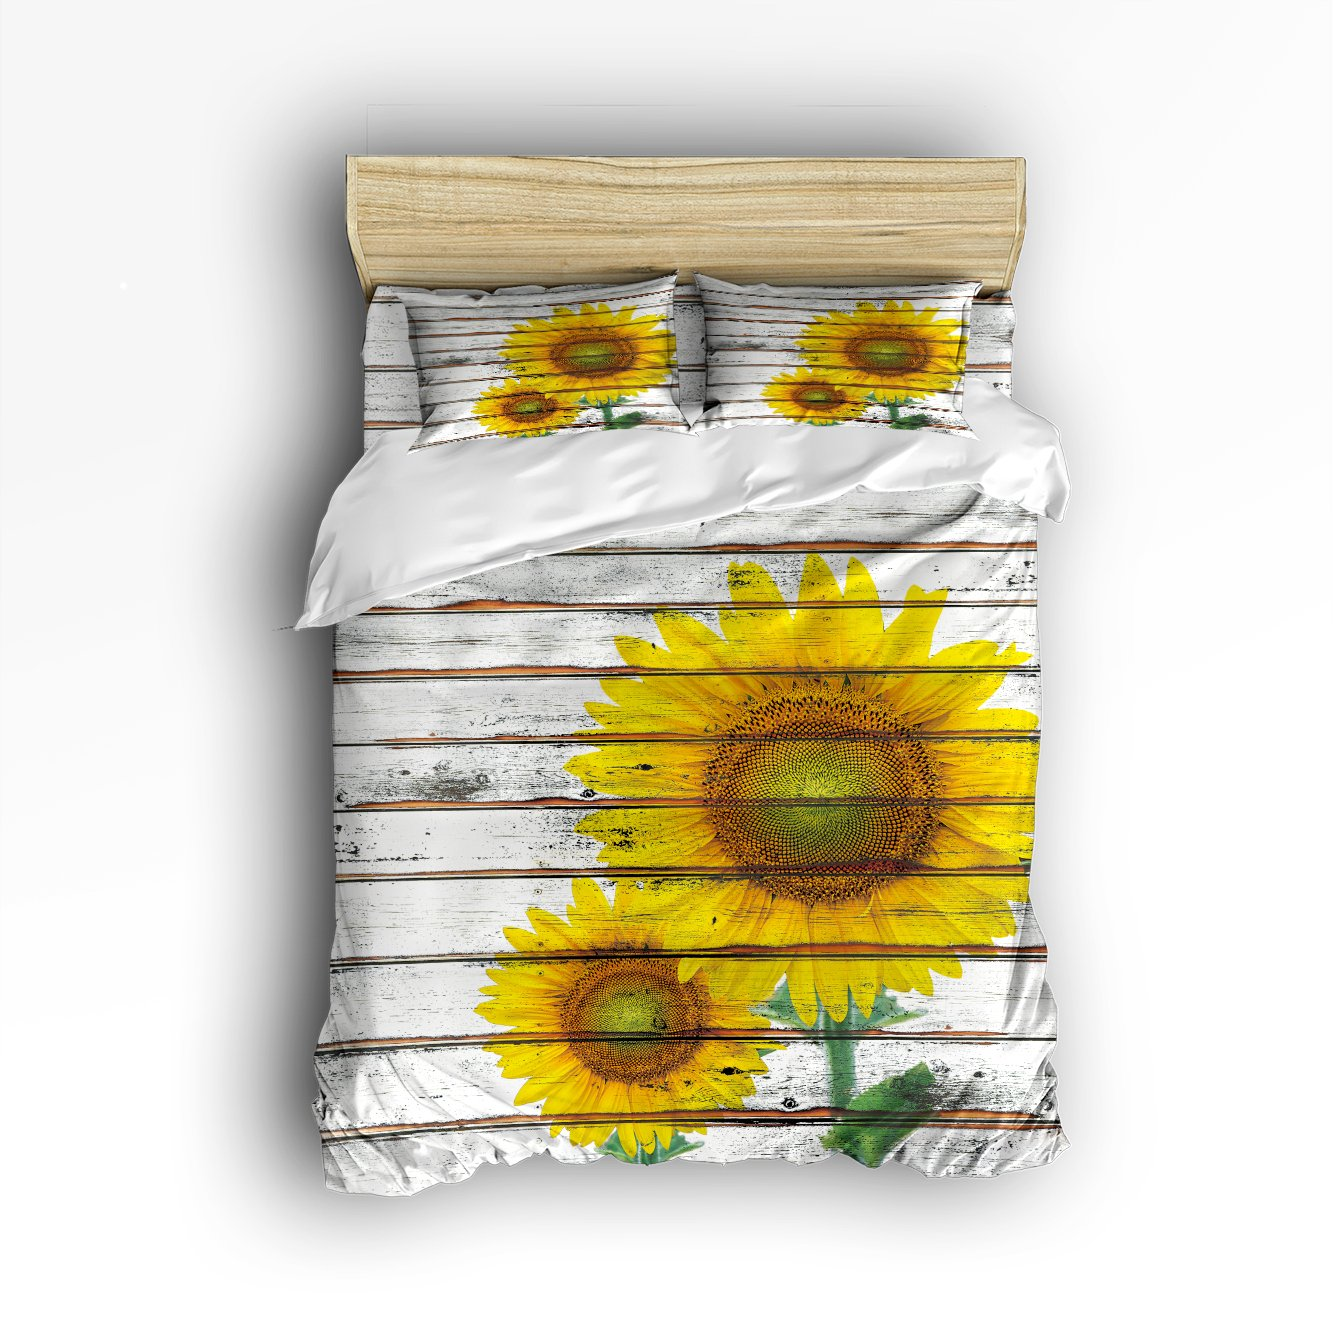 Libaoge 4 Piece Bed Sheets Set, Custom Sunflowers on Rustic Old Barn Wood Print, 1 Flat Sheet 1 Duvet Cover and 2 Pillow Cases